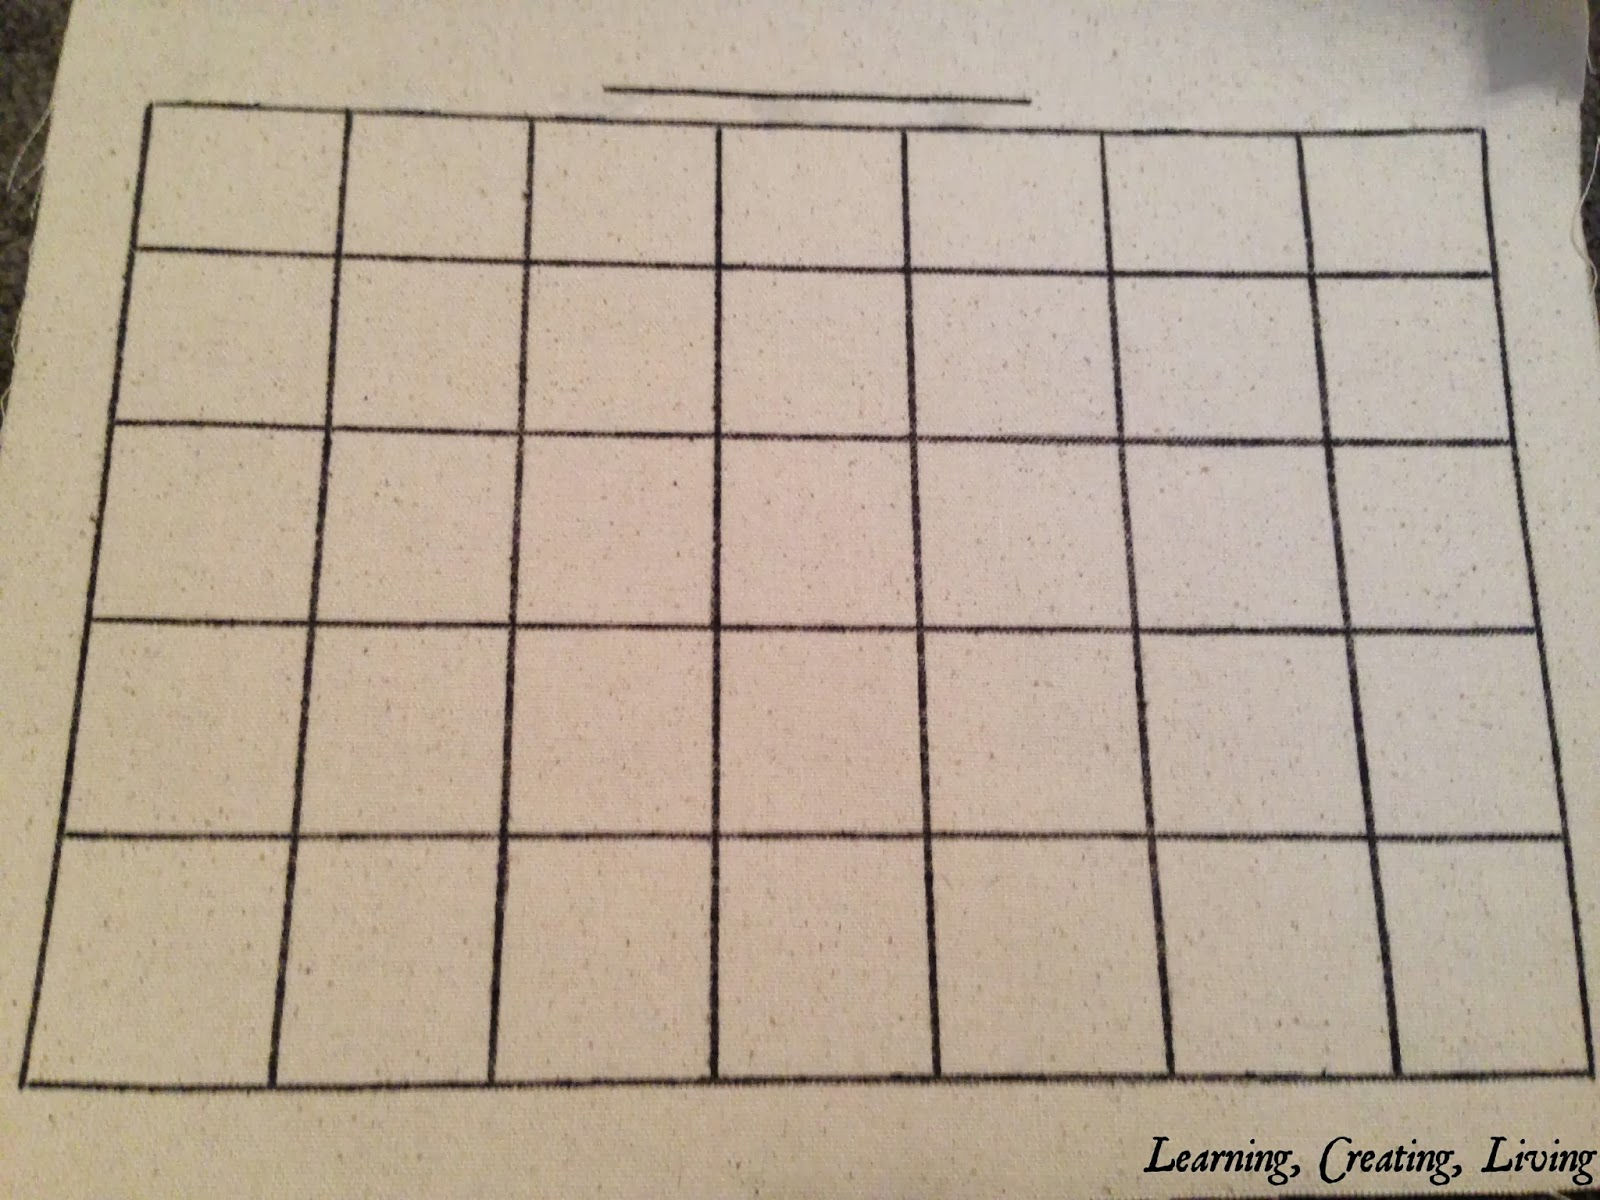 Diy dry erase calendar katelyn chantel blog you can refer back to my menu board here i made 7 columns and a line at the top to write down the month all with a ruler and permanent marker solutioingenieria Image collections